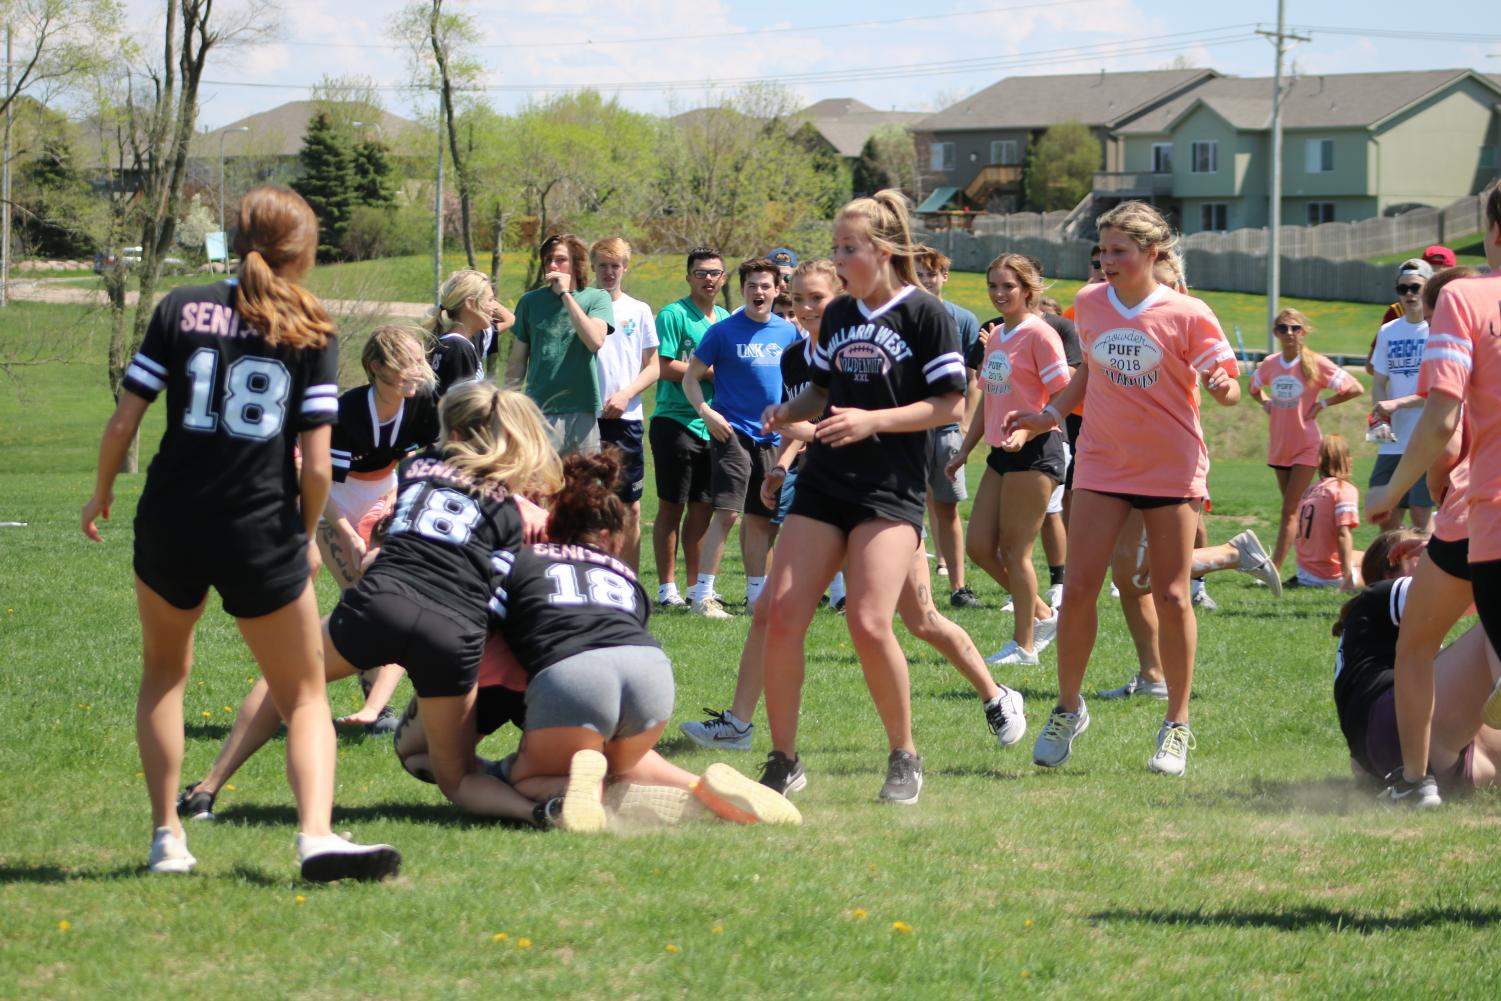 Ashtin Young and Ashleigh Shafer taking down a junior